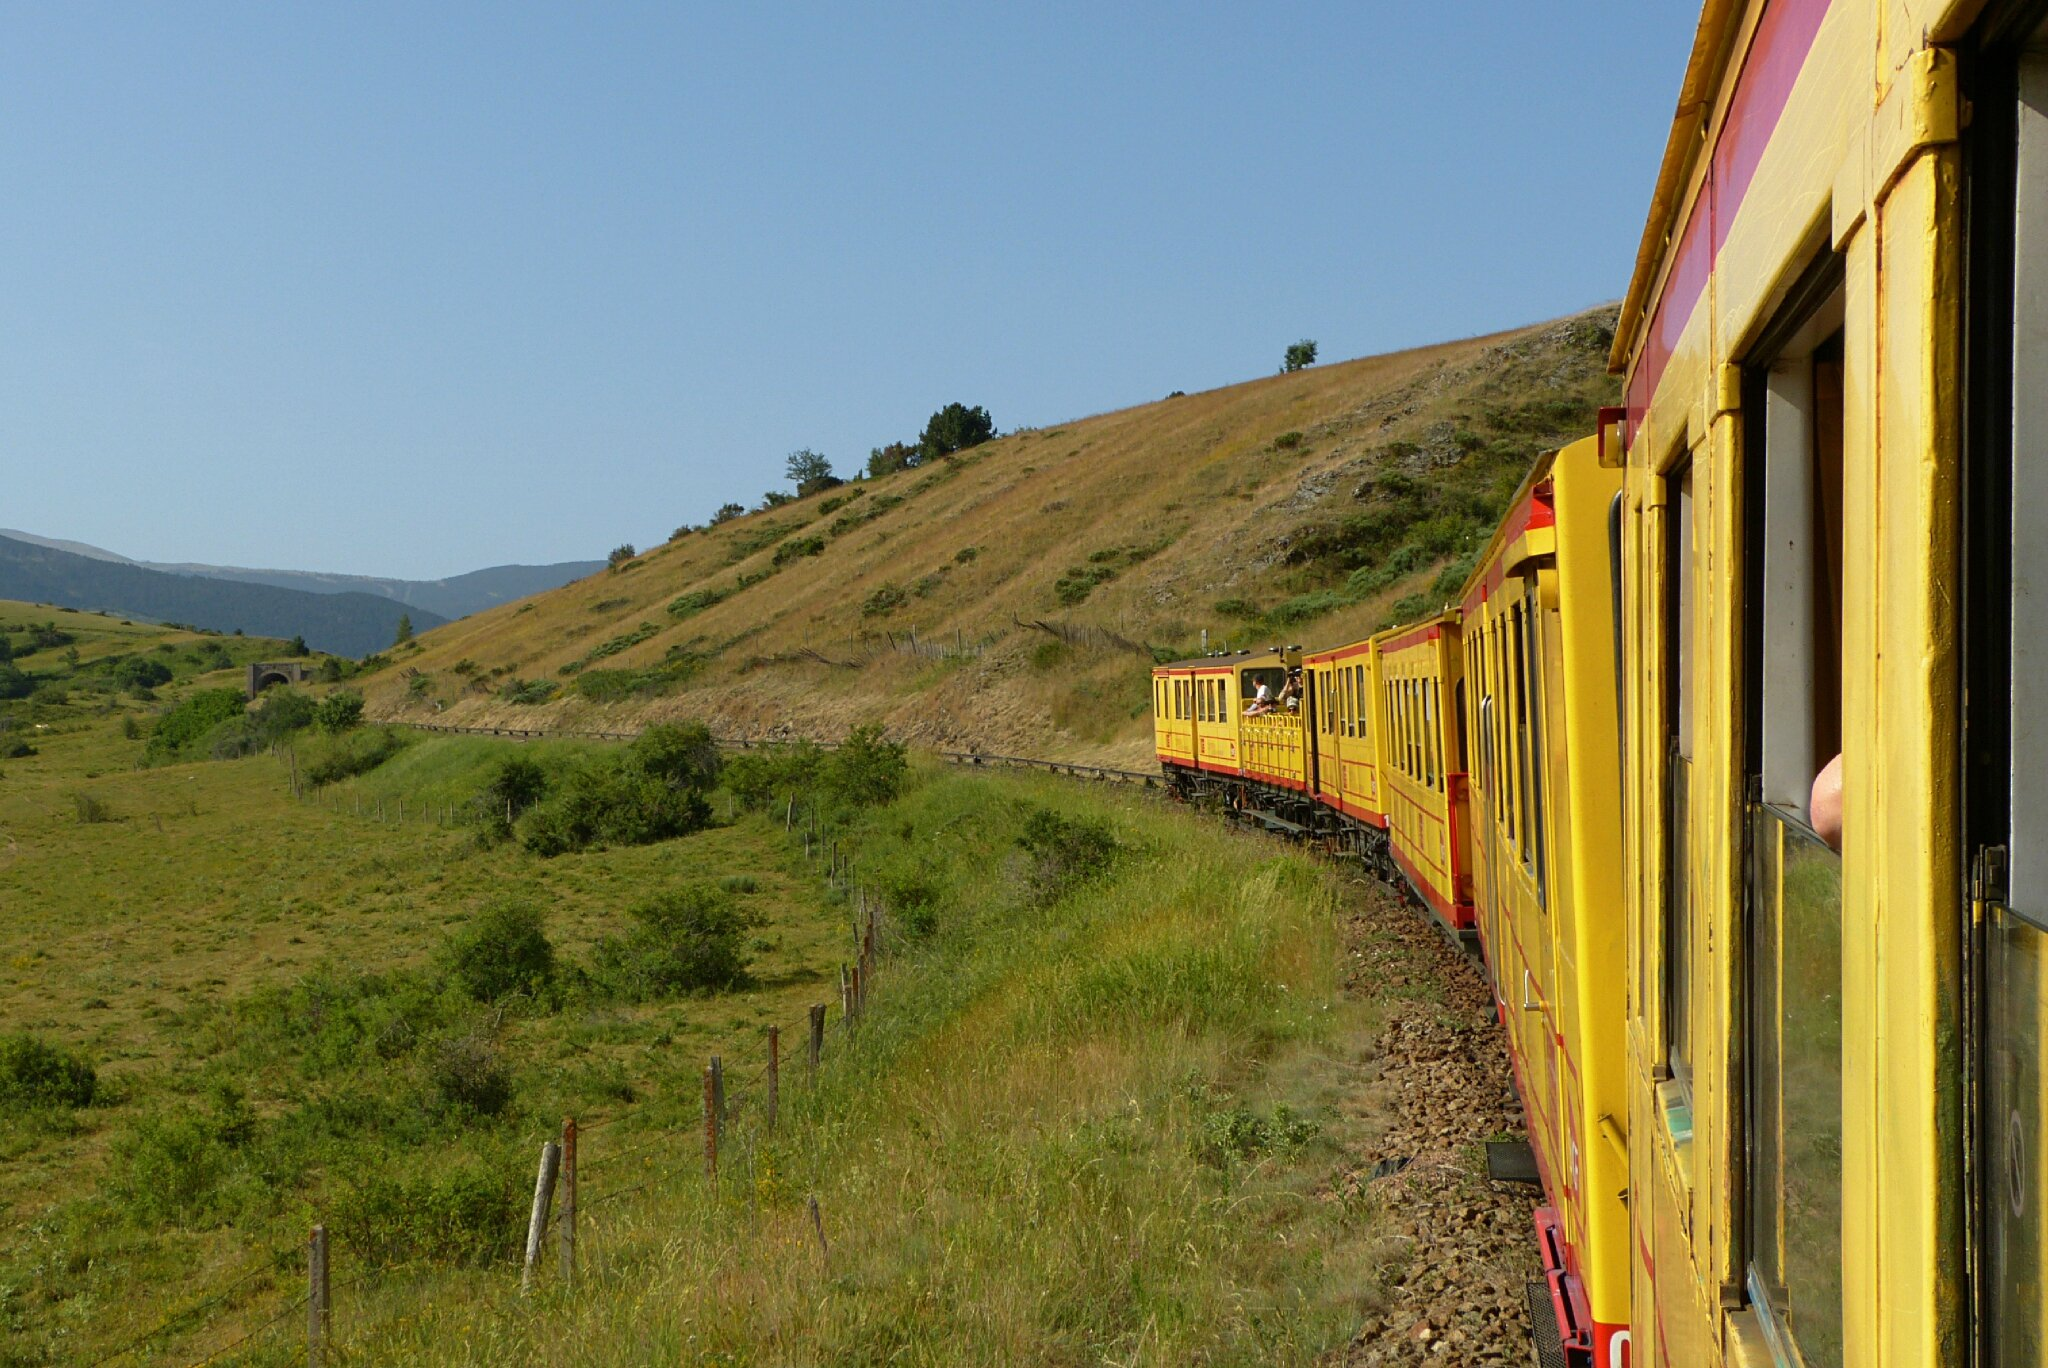 070715_train-jaune-saillagouse-font-romeu5